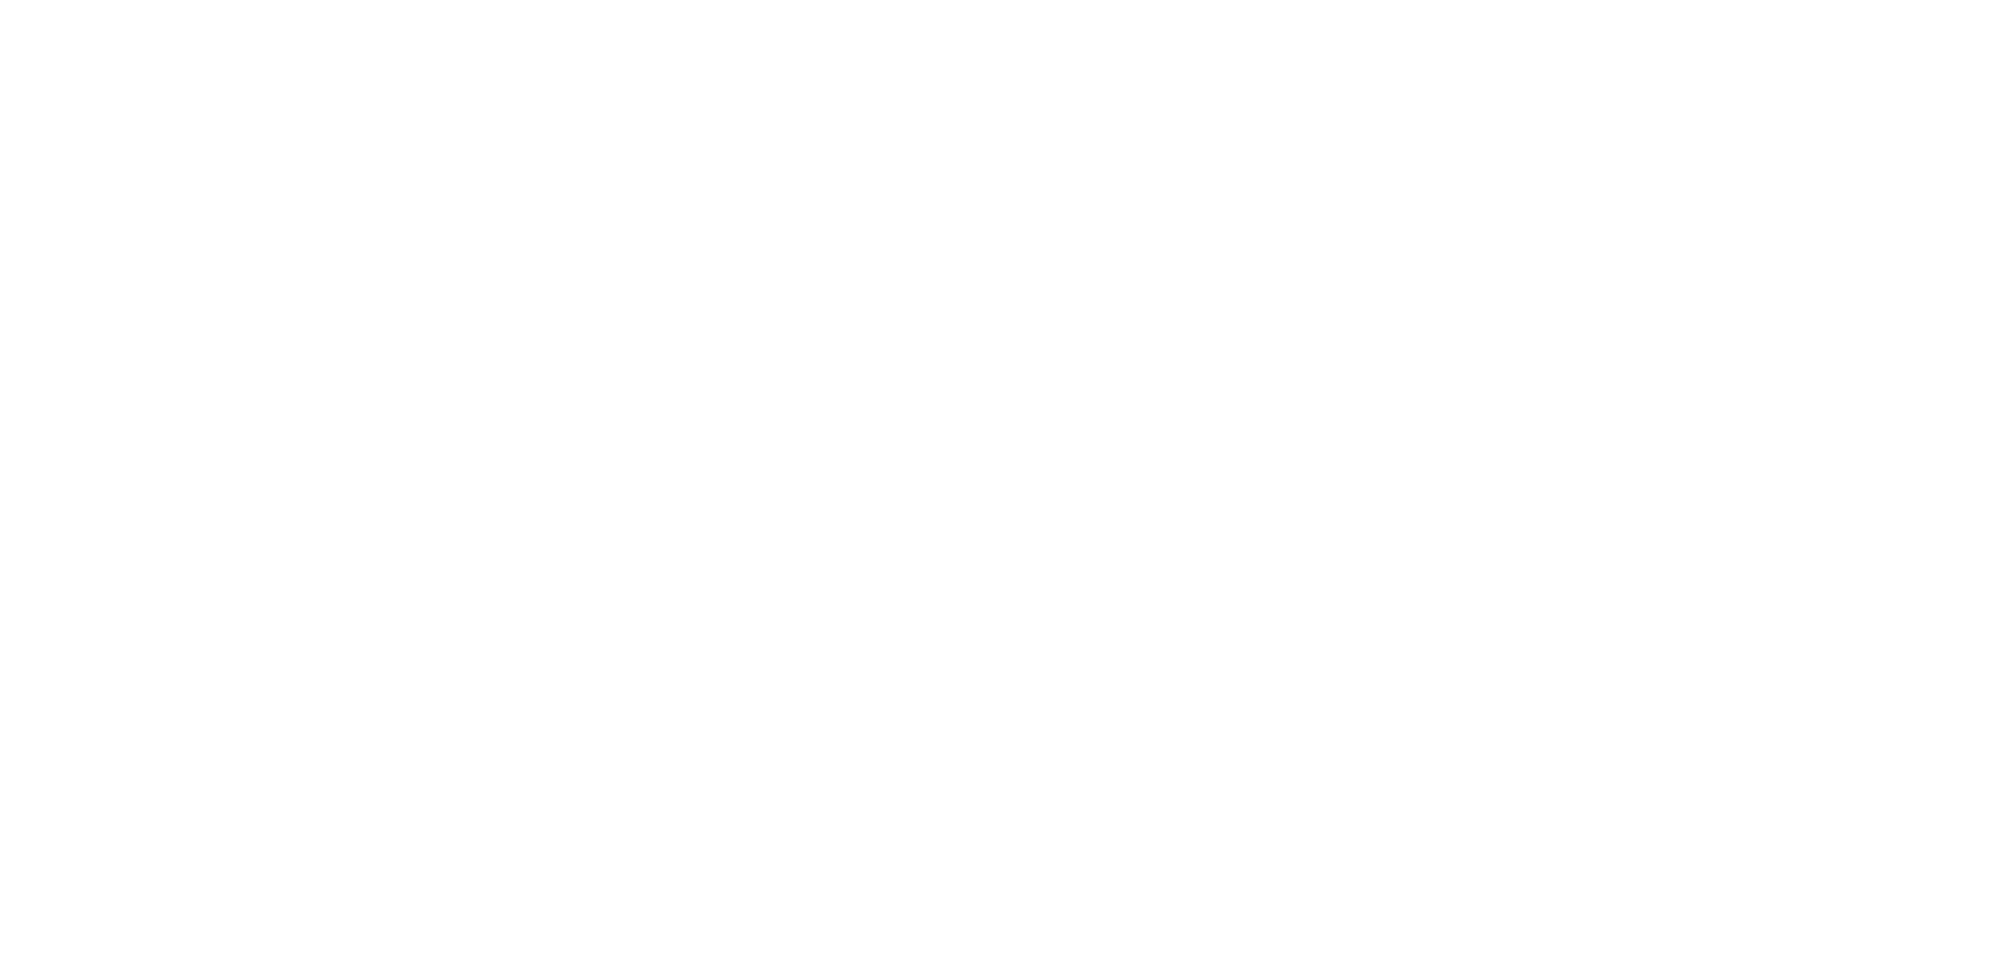 Lake Erie Marine Trades Association